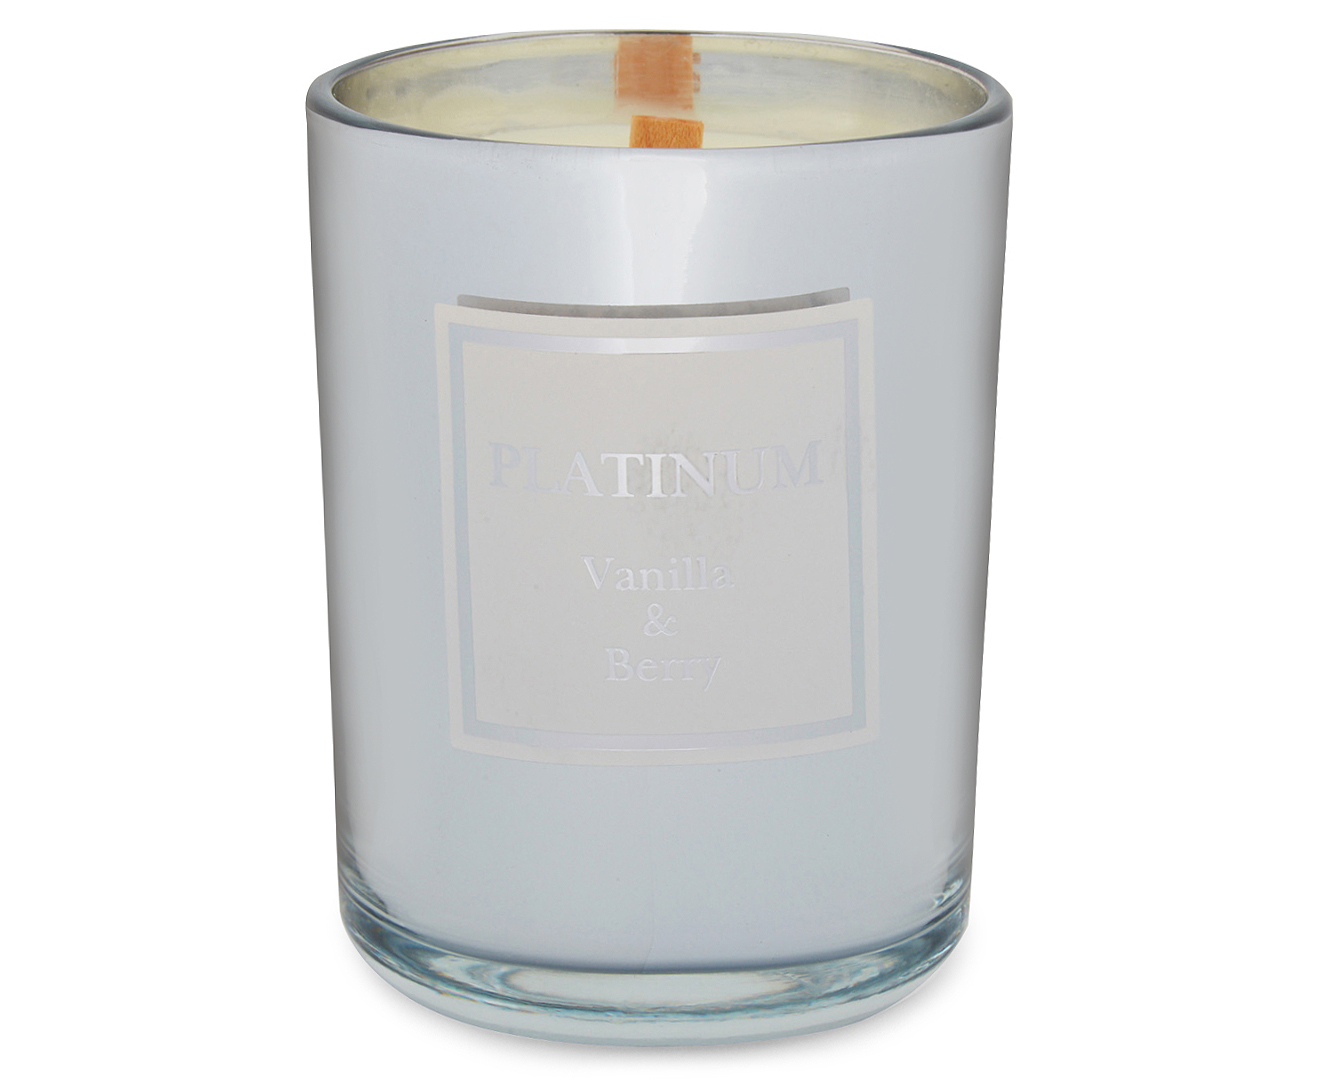 The fine fragrance company precious metal soy candle 250g for Aroma candle and scent company